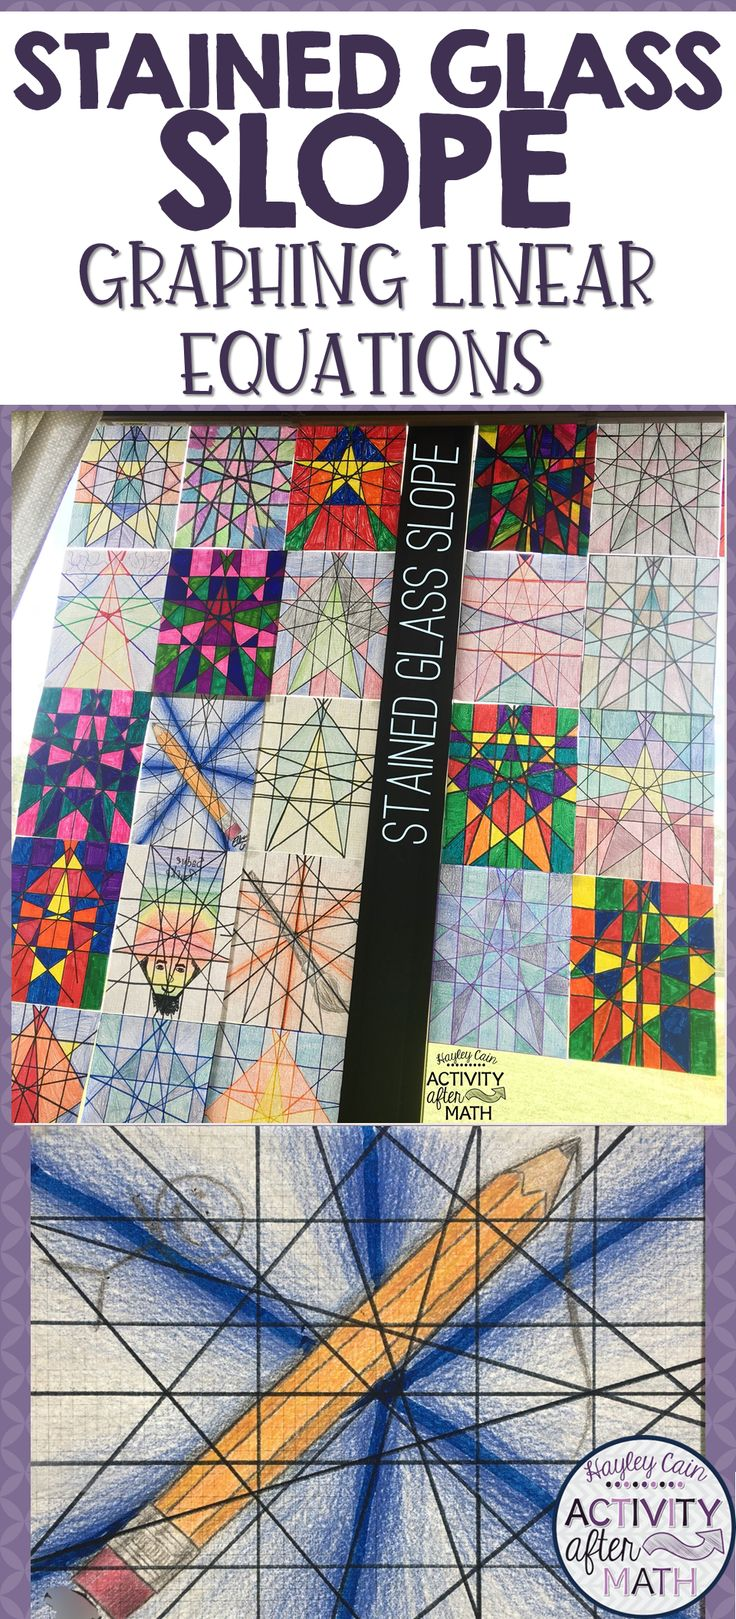 Stained Glass Slope. Students will graph linear equations and use their creativity to